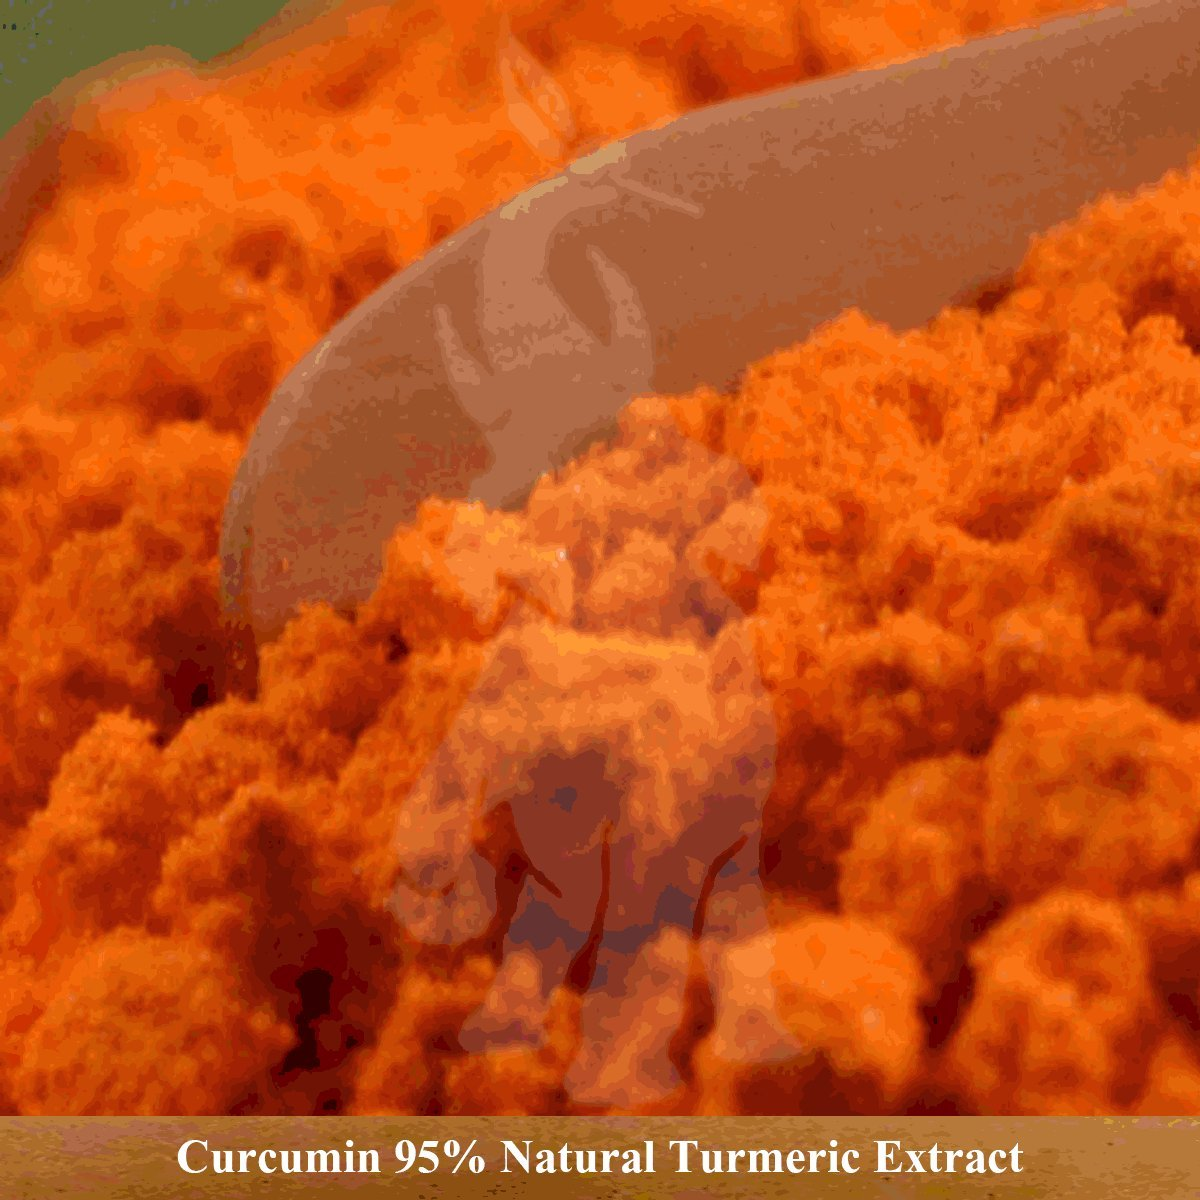 Turmeric Curcumin 95 Curcuminoids – Natural Turmeric Extract Powder, Anti-Inflammatory Supplement with 95 Standardized Curcuminoids 1 Kilogram 2.2 Lbs